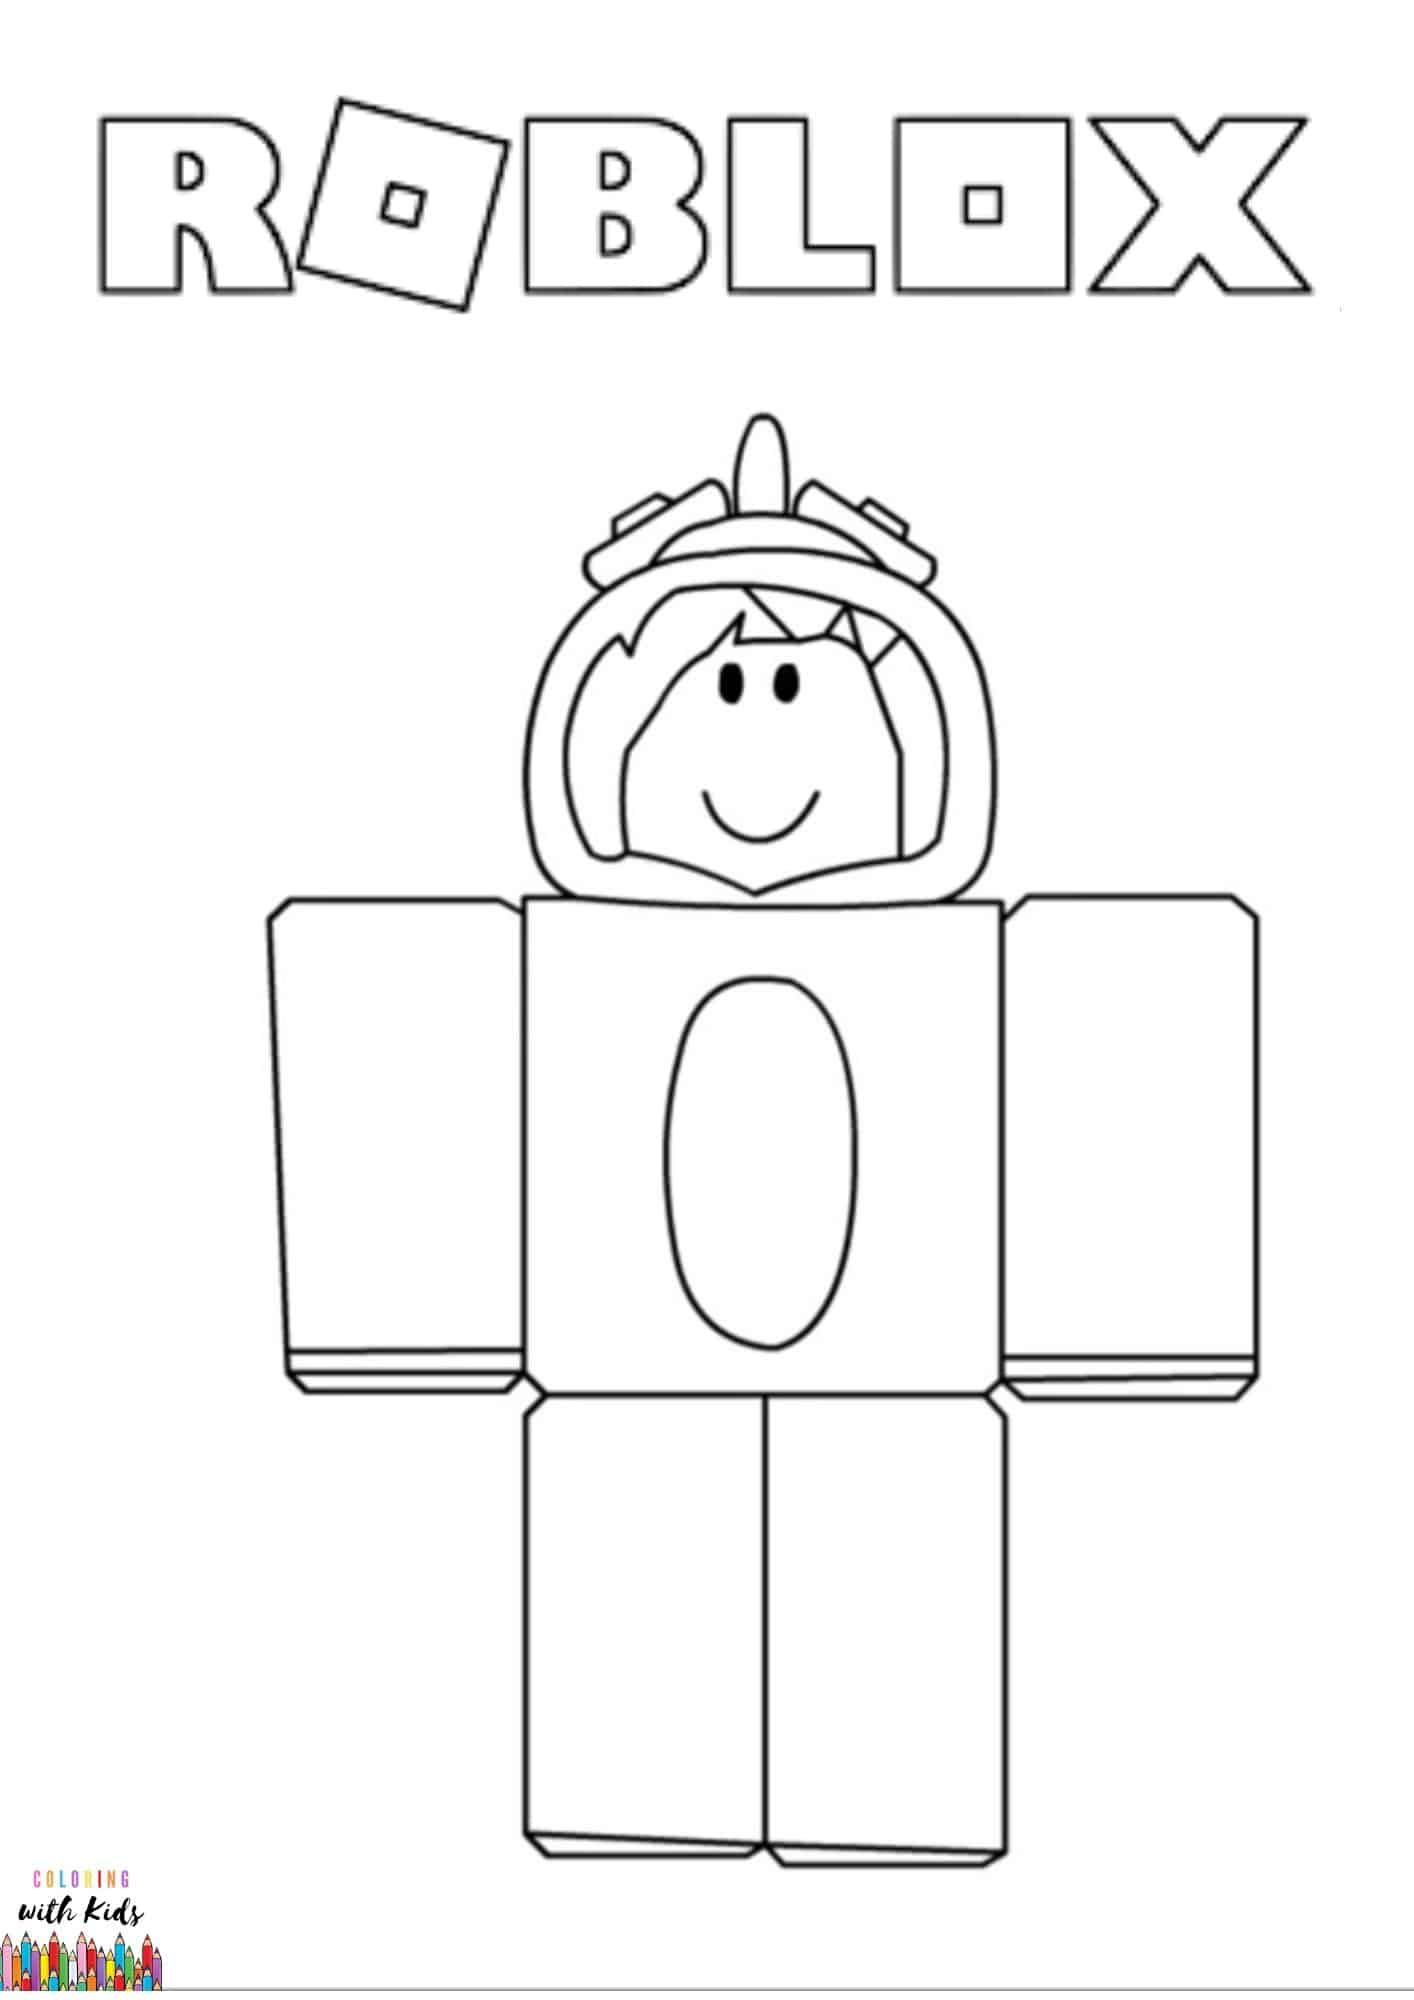 Roblox Unicorn Avatar Coloring Page Image Credit Roblox Unicorn Avatar Drawing By Yadia Chenia Unicorn Coloring Pages Free Coloring Pages Coloring Pages